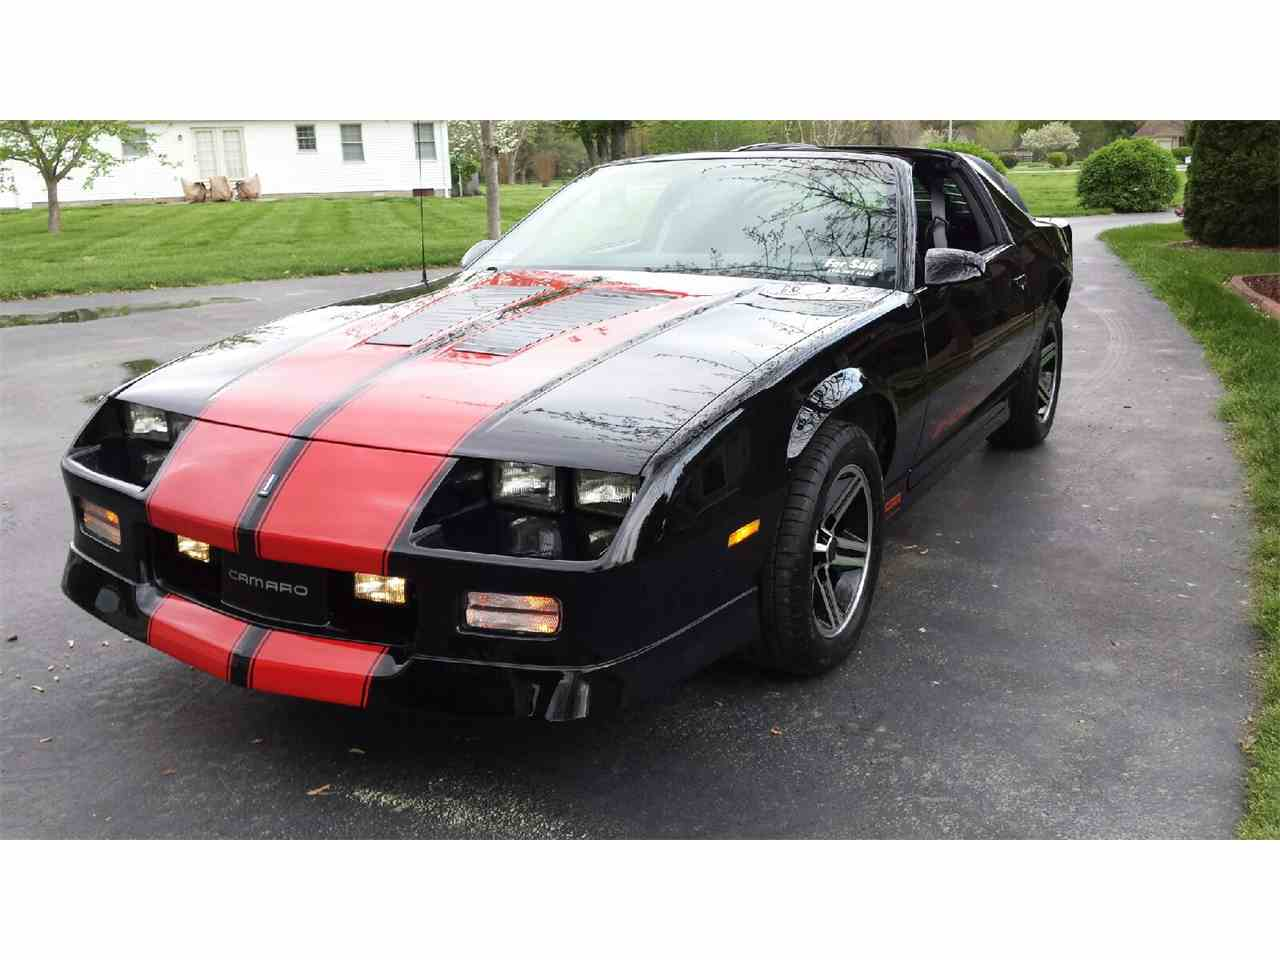 Classic Chevrolet Camaro Iroc Z For Sale On Classiccars Com